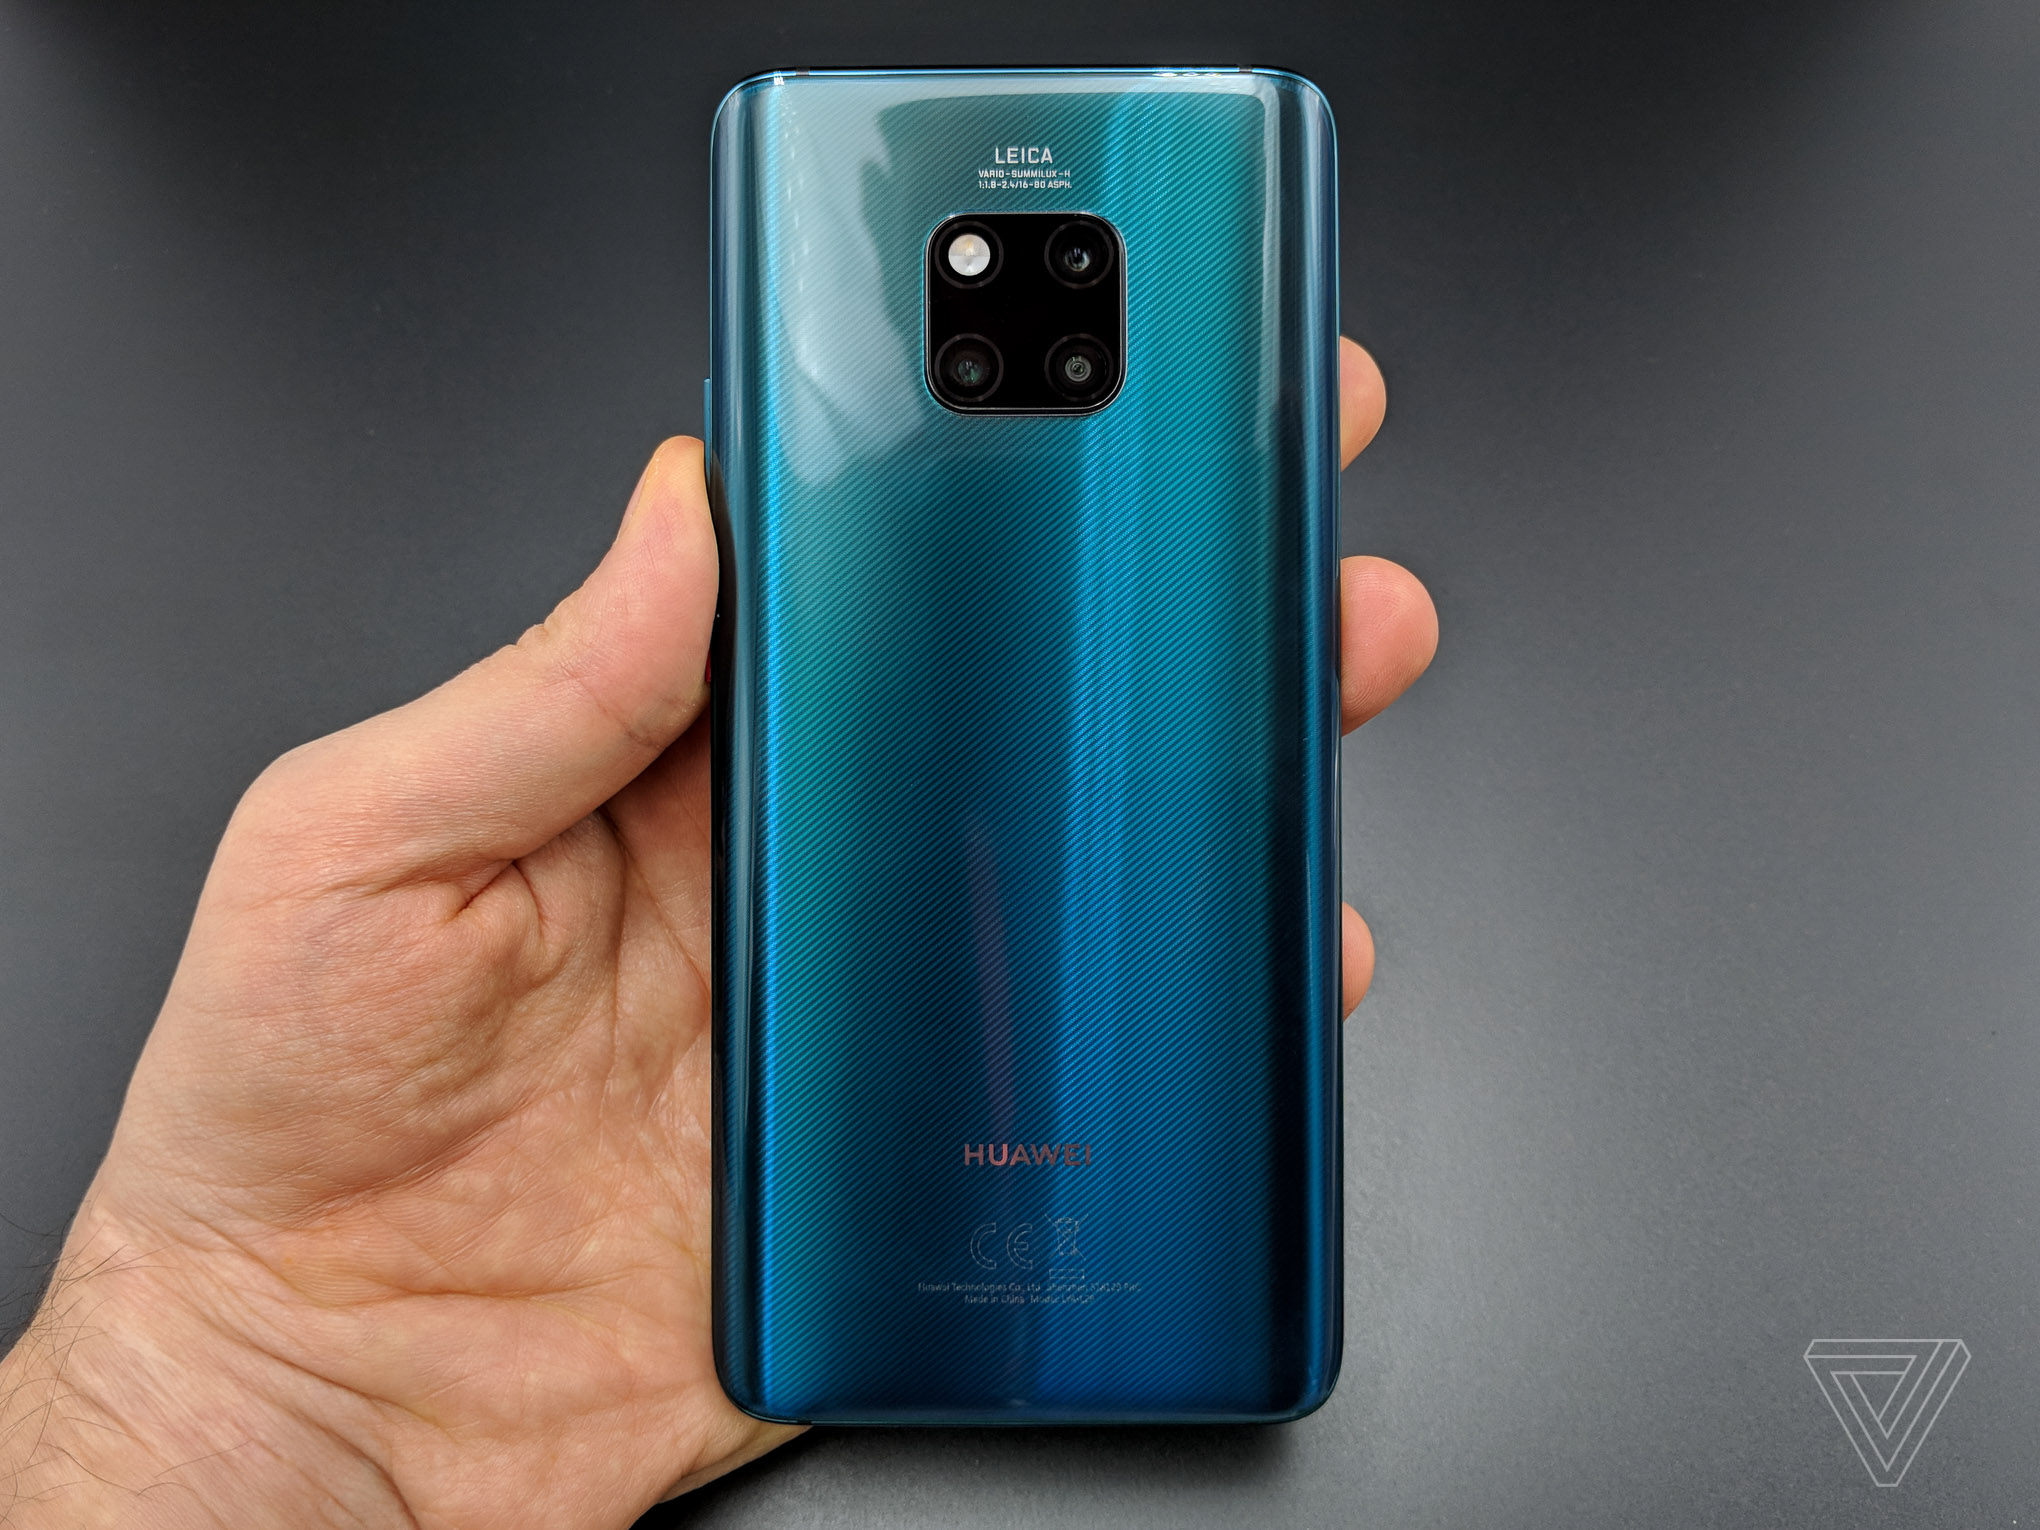 Huawei Mate 20 Pro review: the best phone America can't get - The Verge